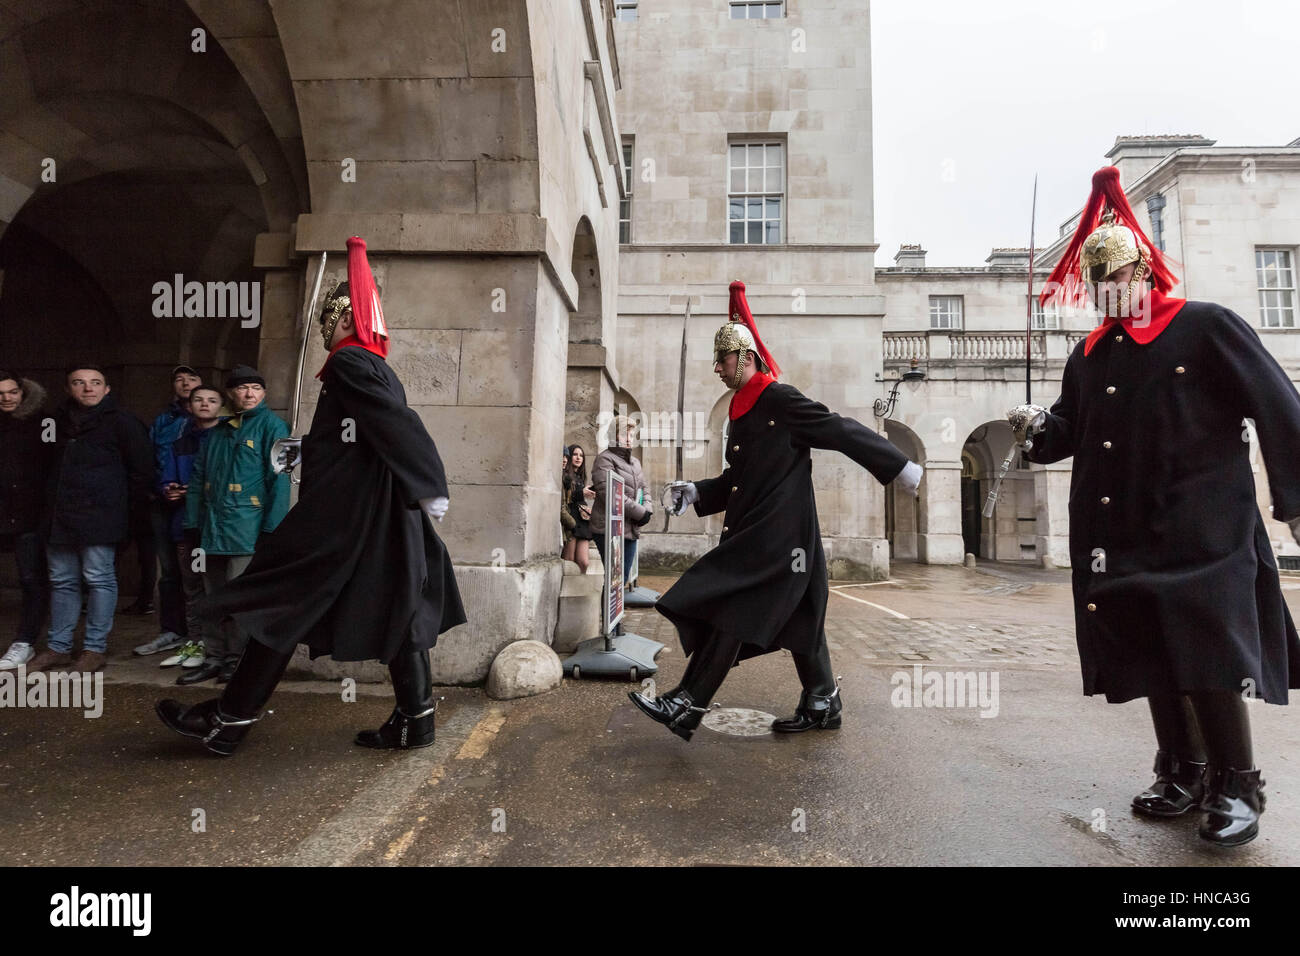 London, UK. 11th Feb, 2017. Changing of the Horse Guards at Whitehall Credit: Guy Corbishley/Alamy Live News - Stock Image